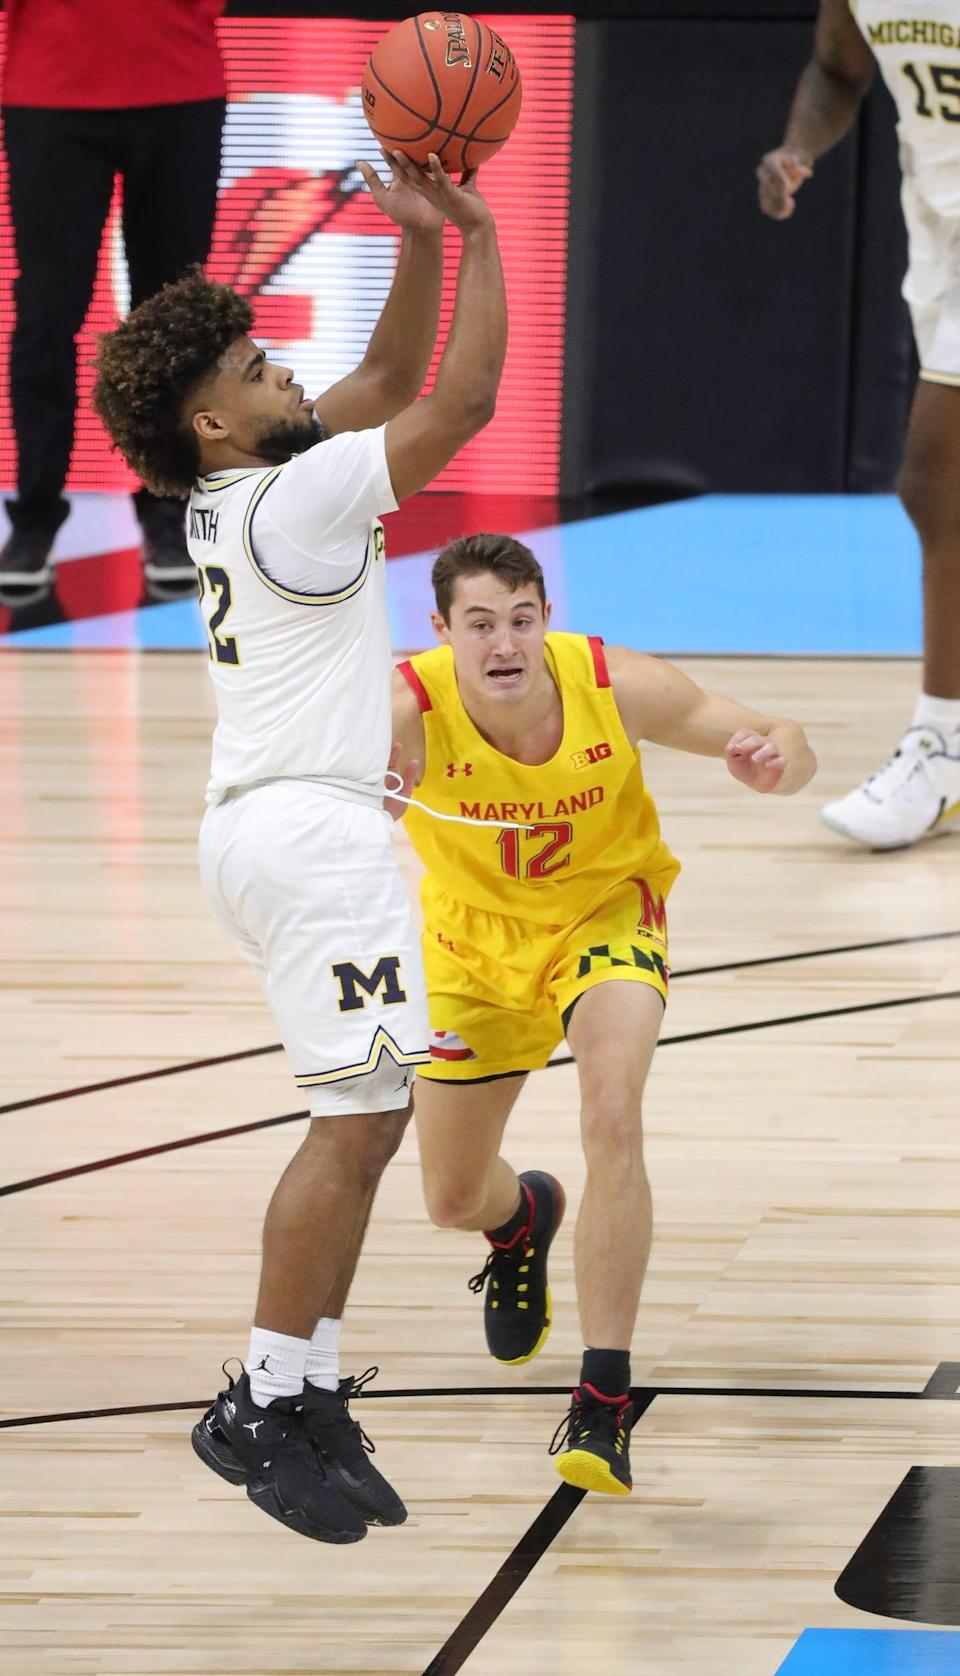 Mike Smith scores against Maryland's Reese Mona during Michigan's 79-66 win in the Big Ten tournament quarterfinals Friday, March 12, 2021 at Lucas Oil Stadium in Indianapolis.